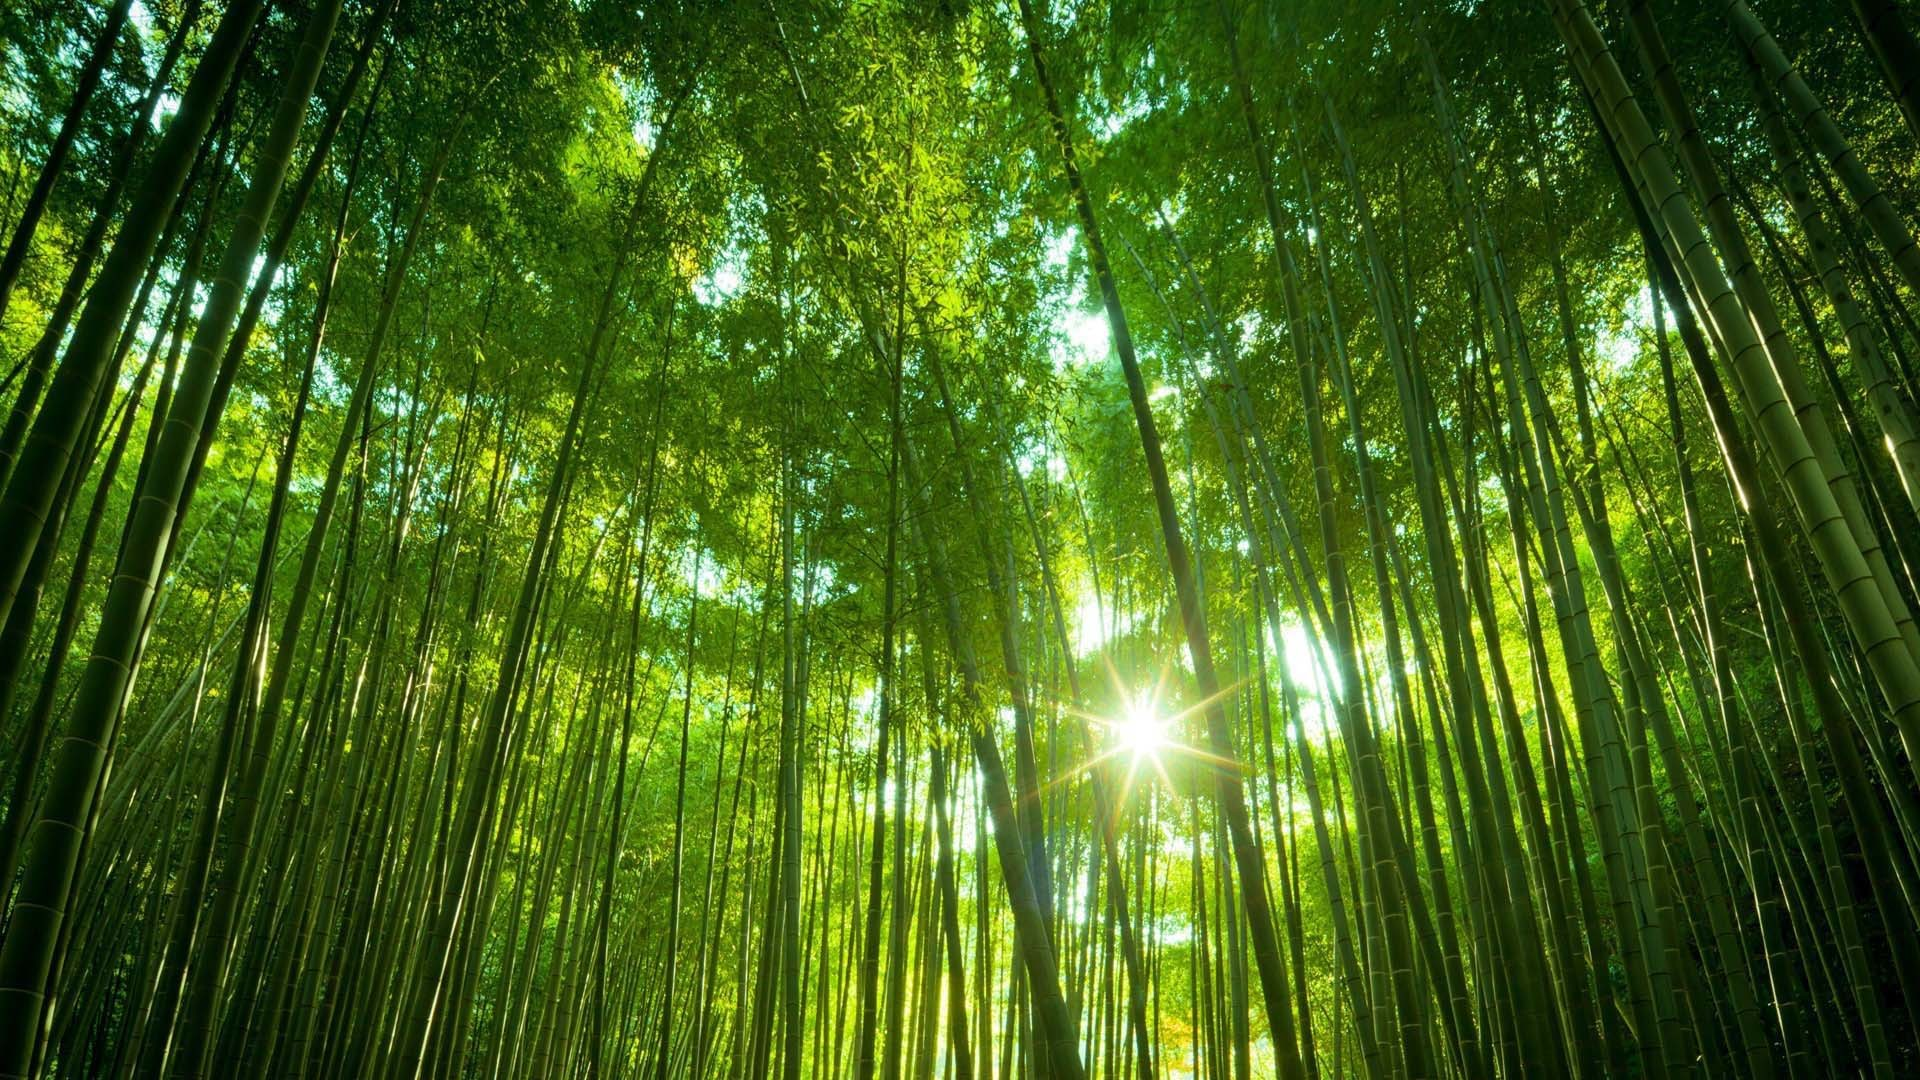 1920x1080 Bamboo Forest Wallpaper 3 HD Image Wallpaper